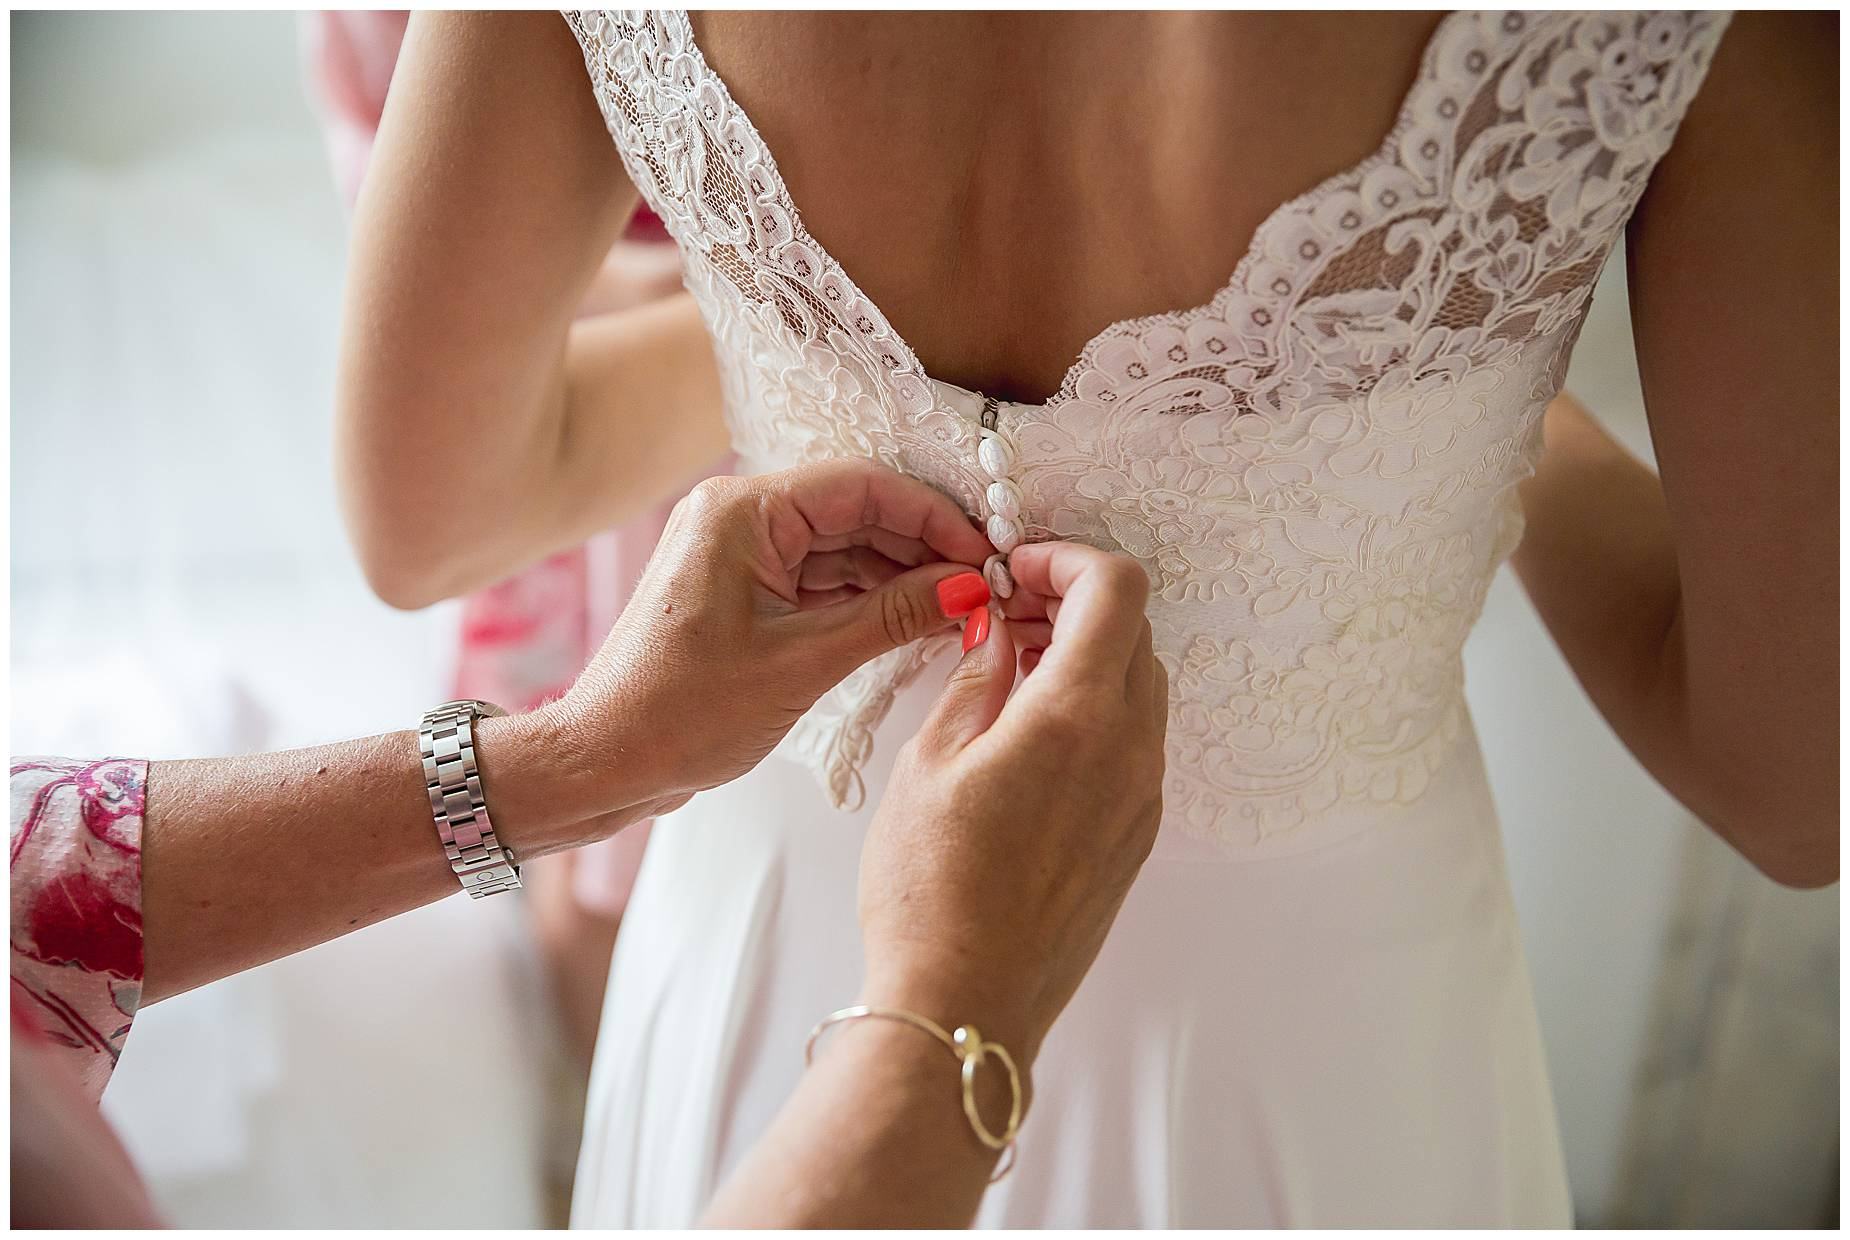 fingers doing up wedding dress